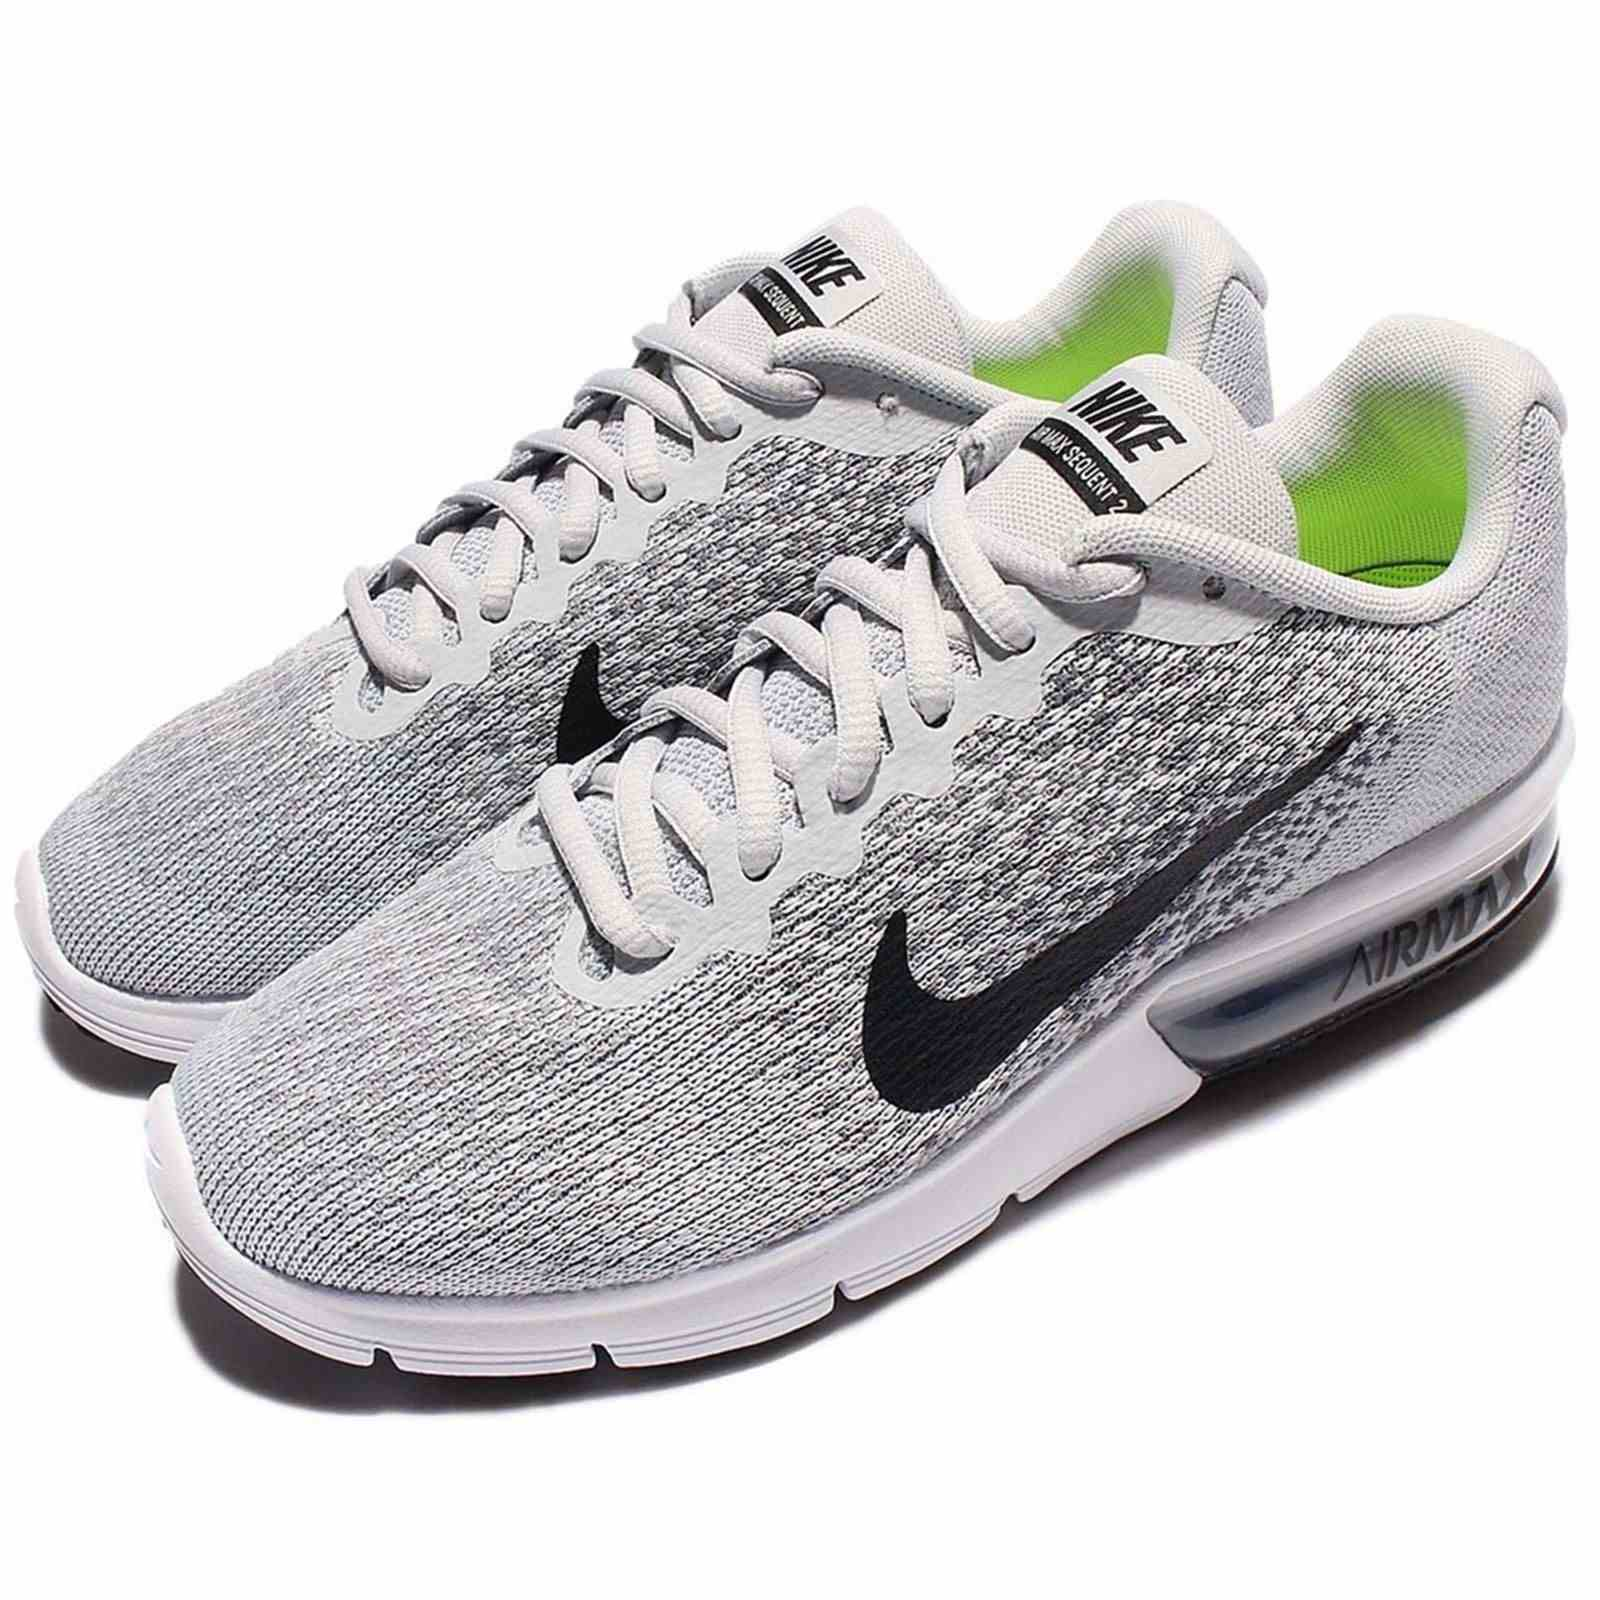 big sale d3f01 31ca4 NIKE Air Max Sequent 2 - Chaussures de running - gris